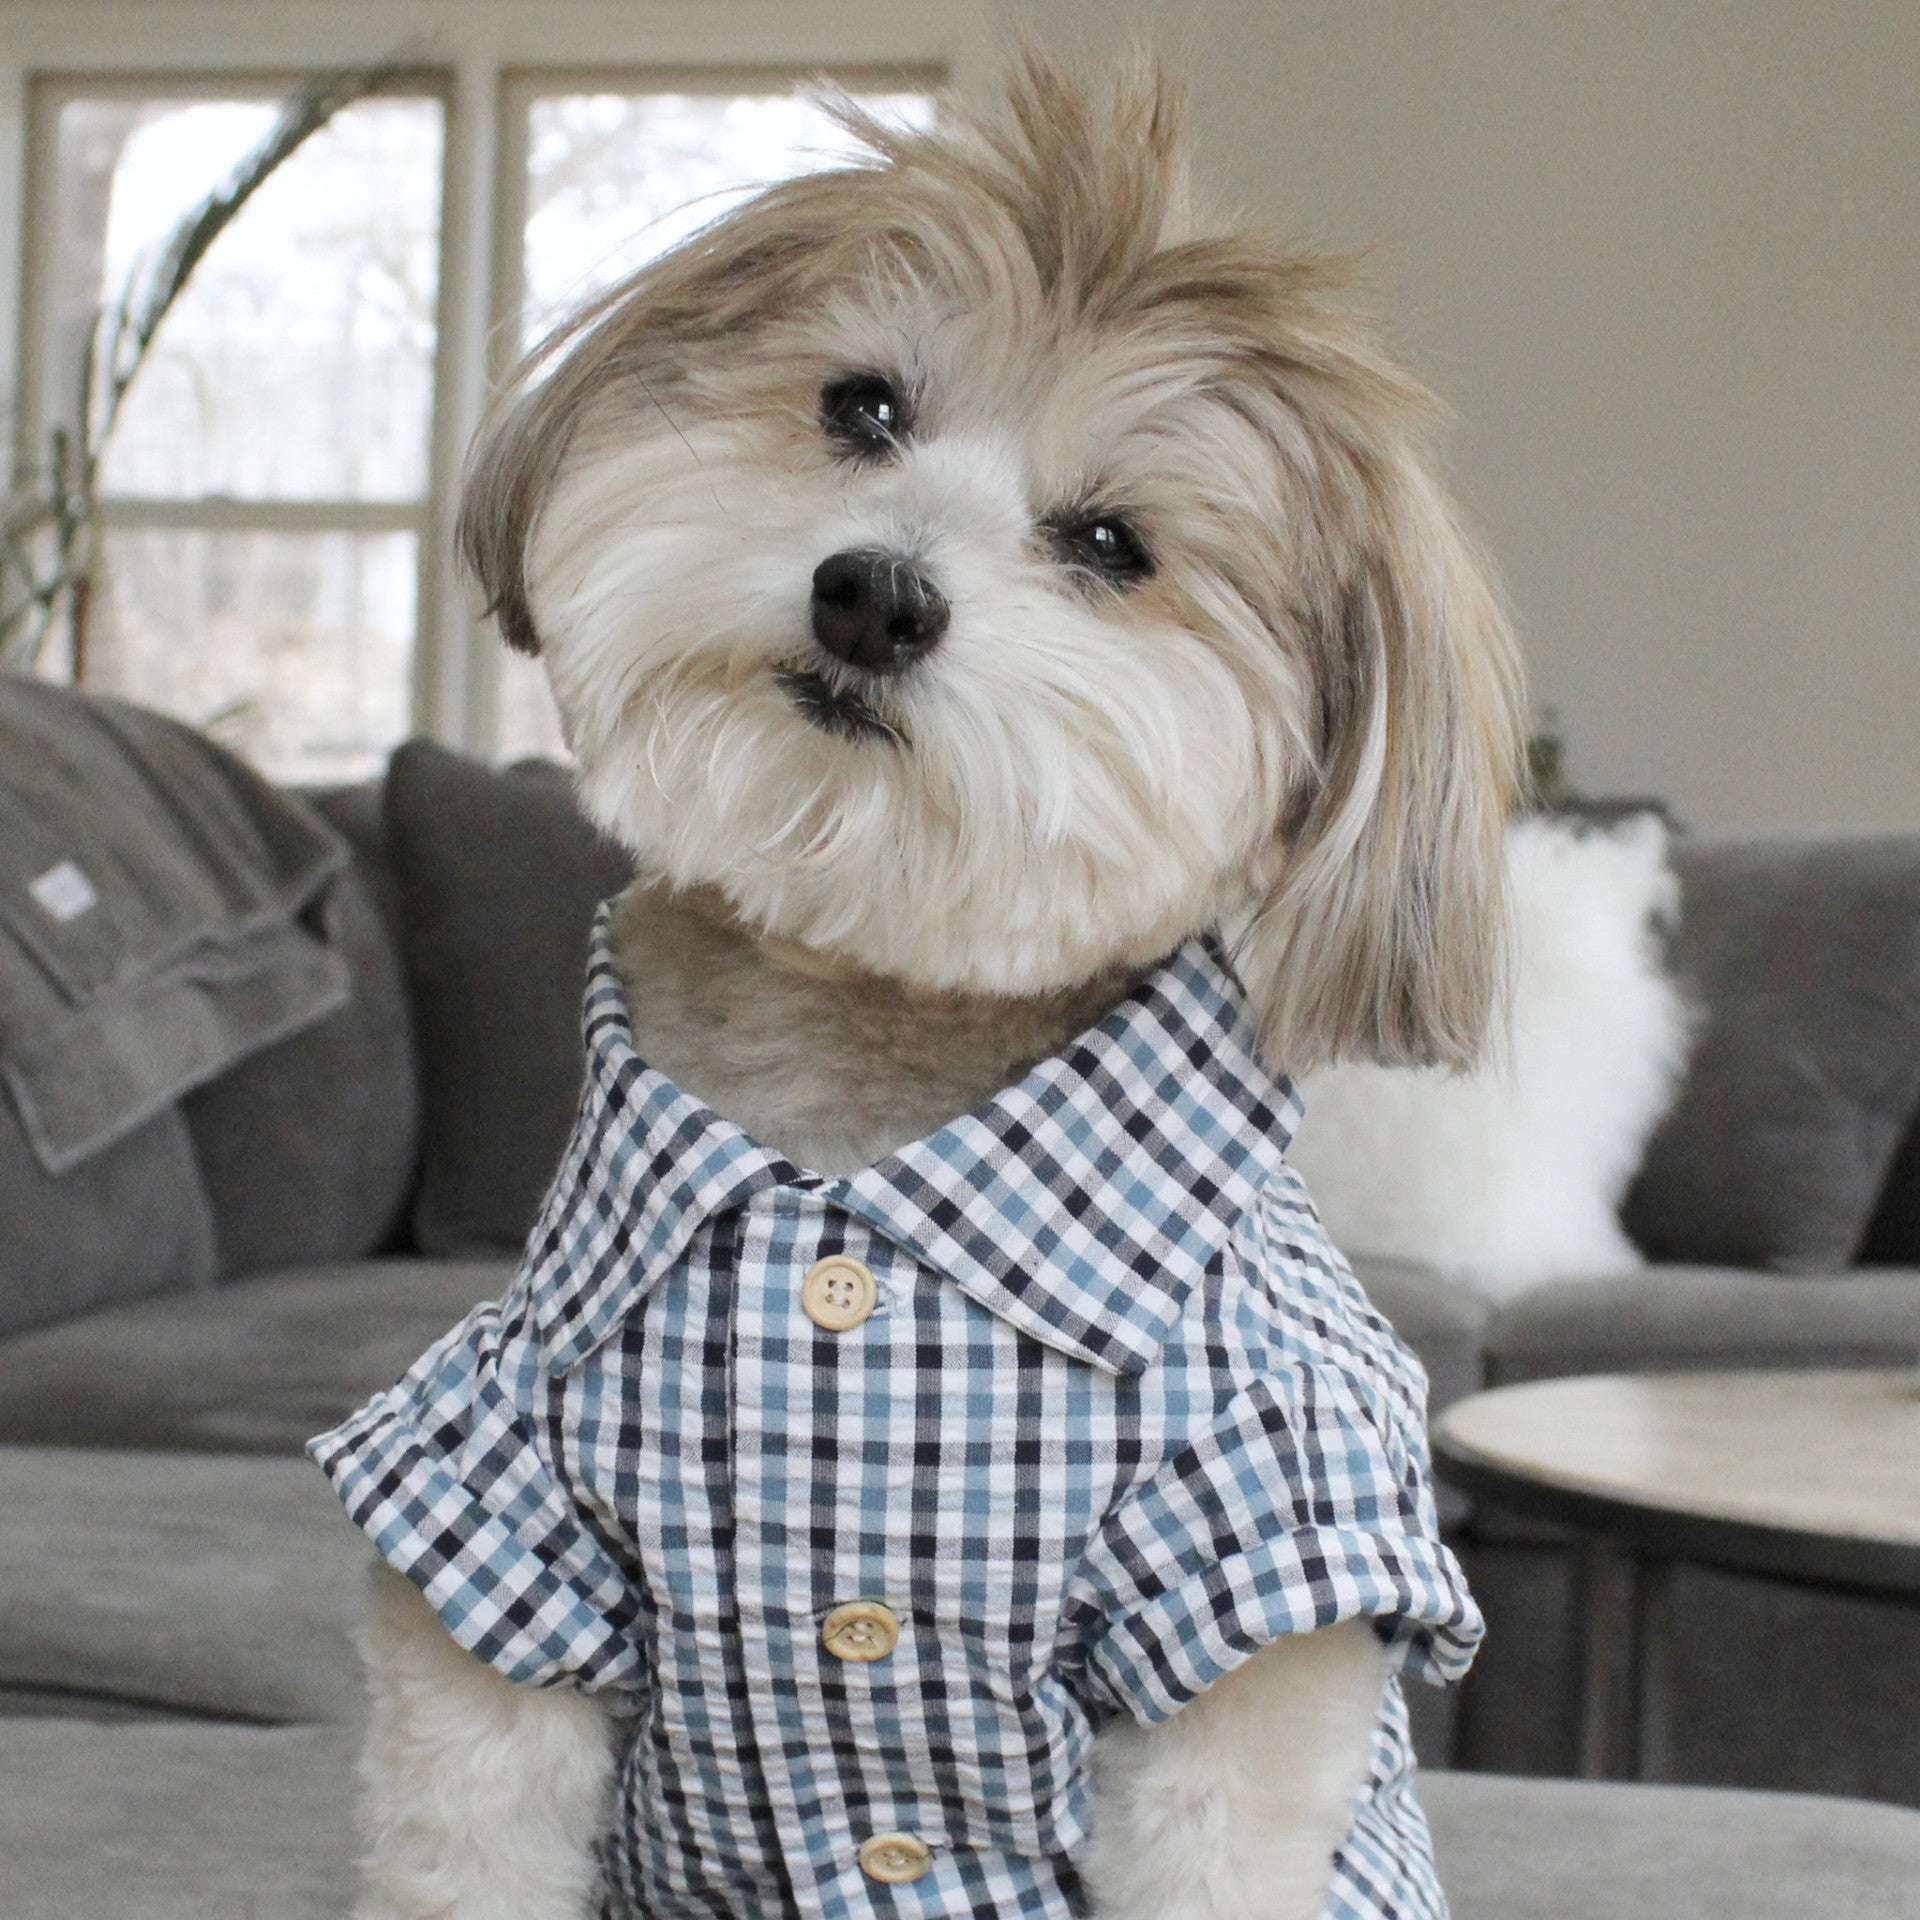 Mini-Check Seersucker Plaid Shirt by Dog Threads